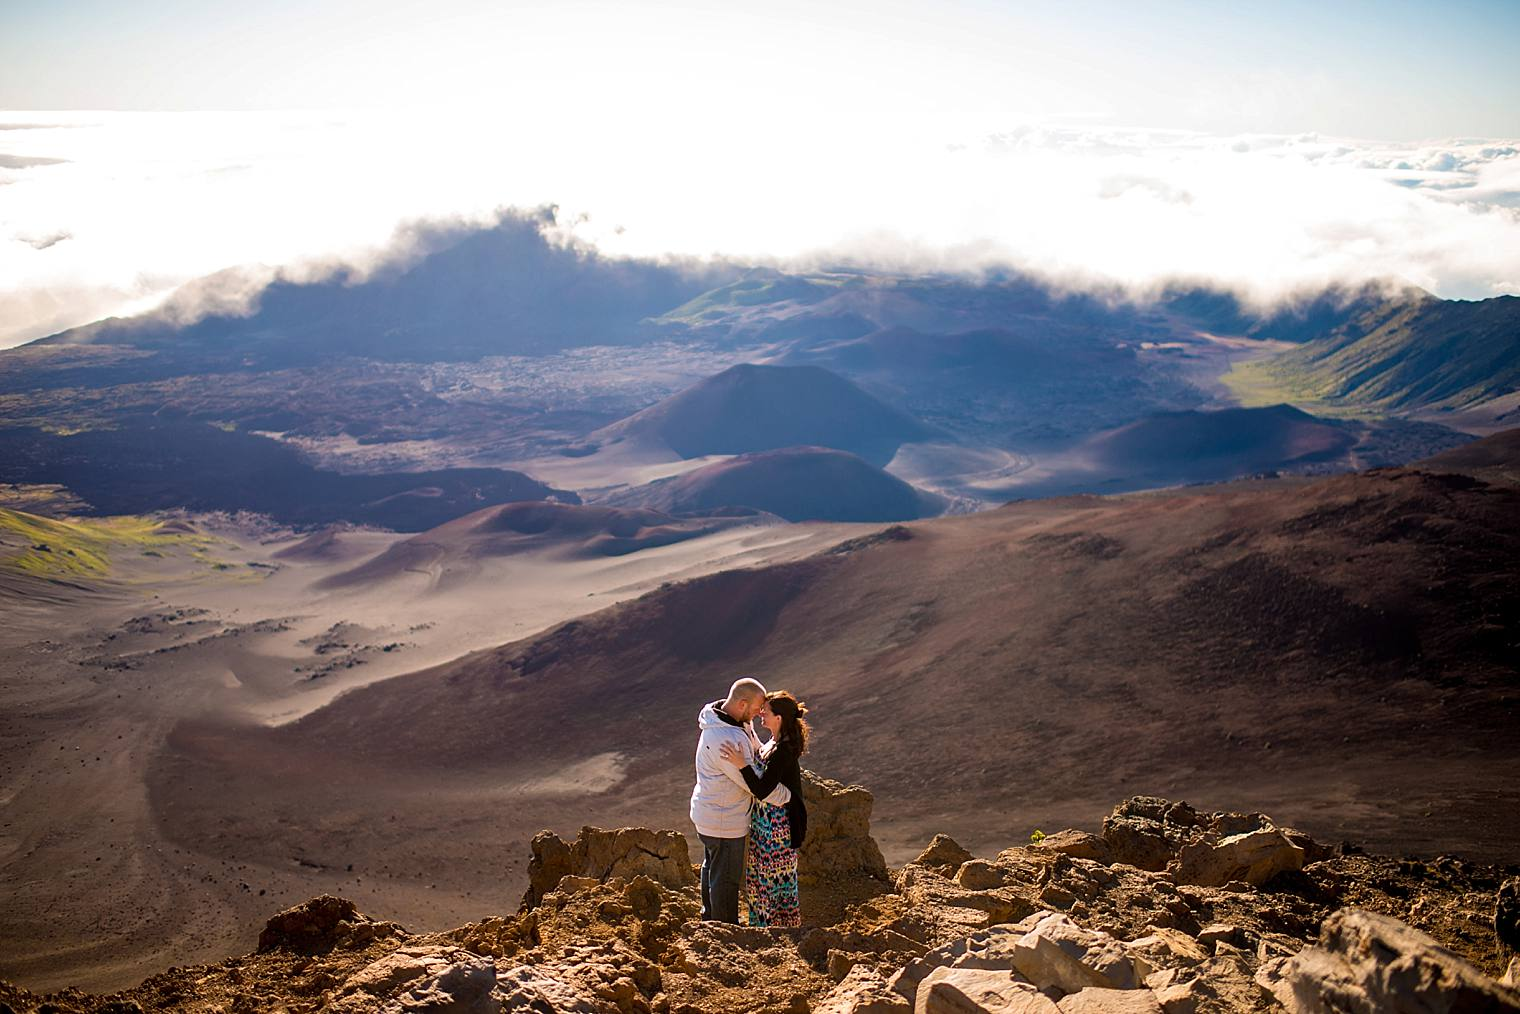 Haleakala's crater in Maui, Hawaii